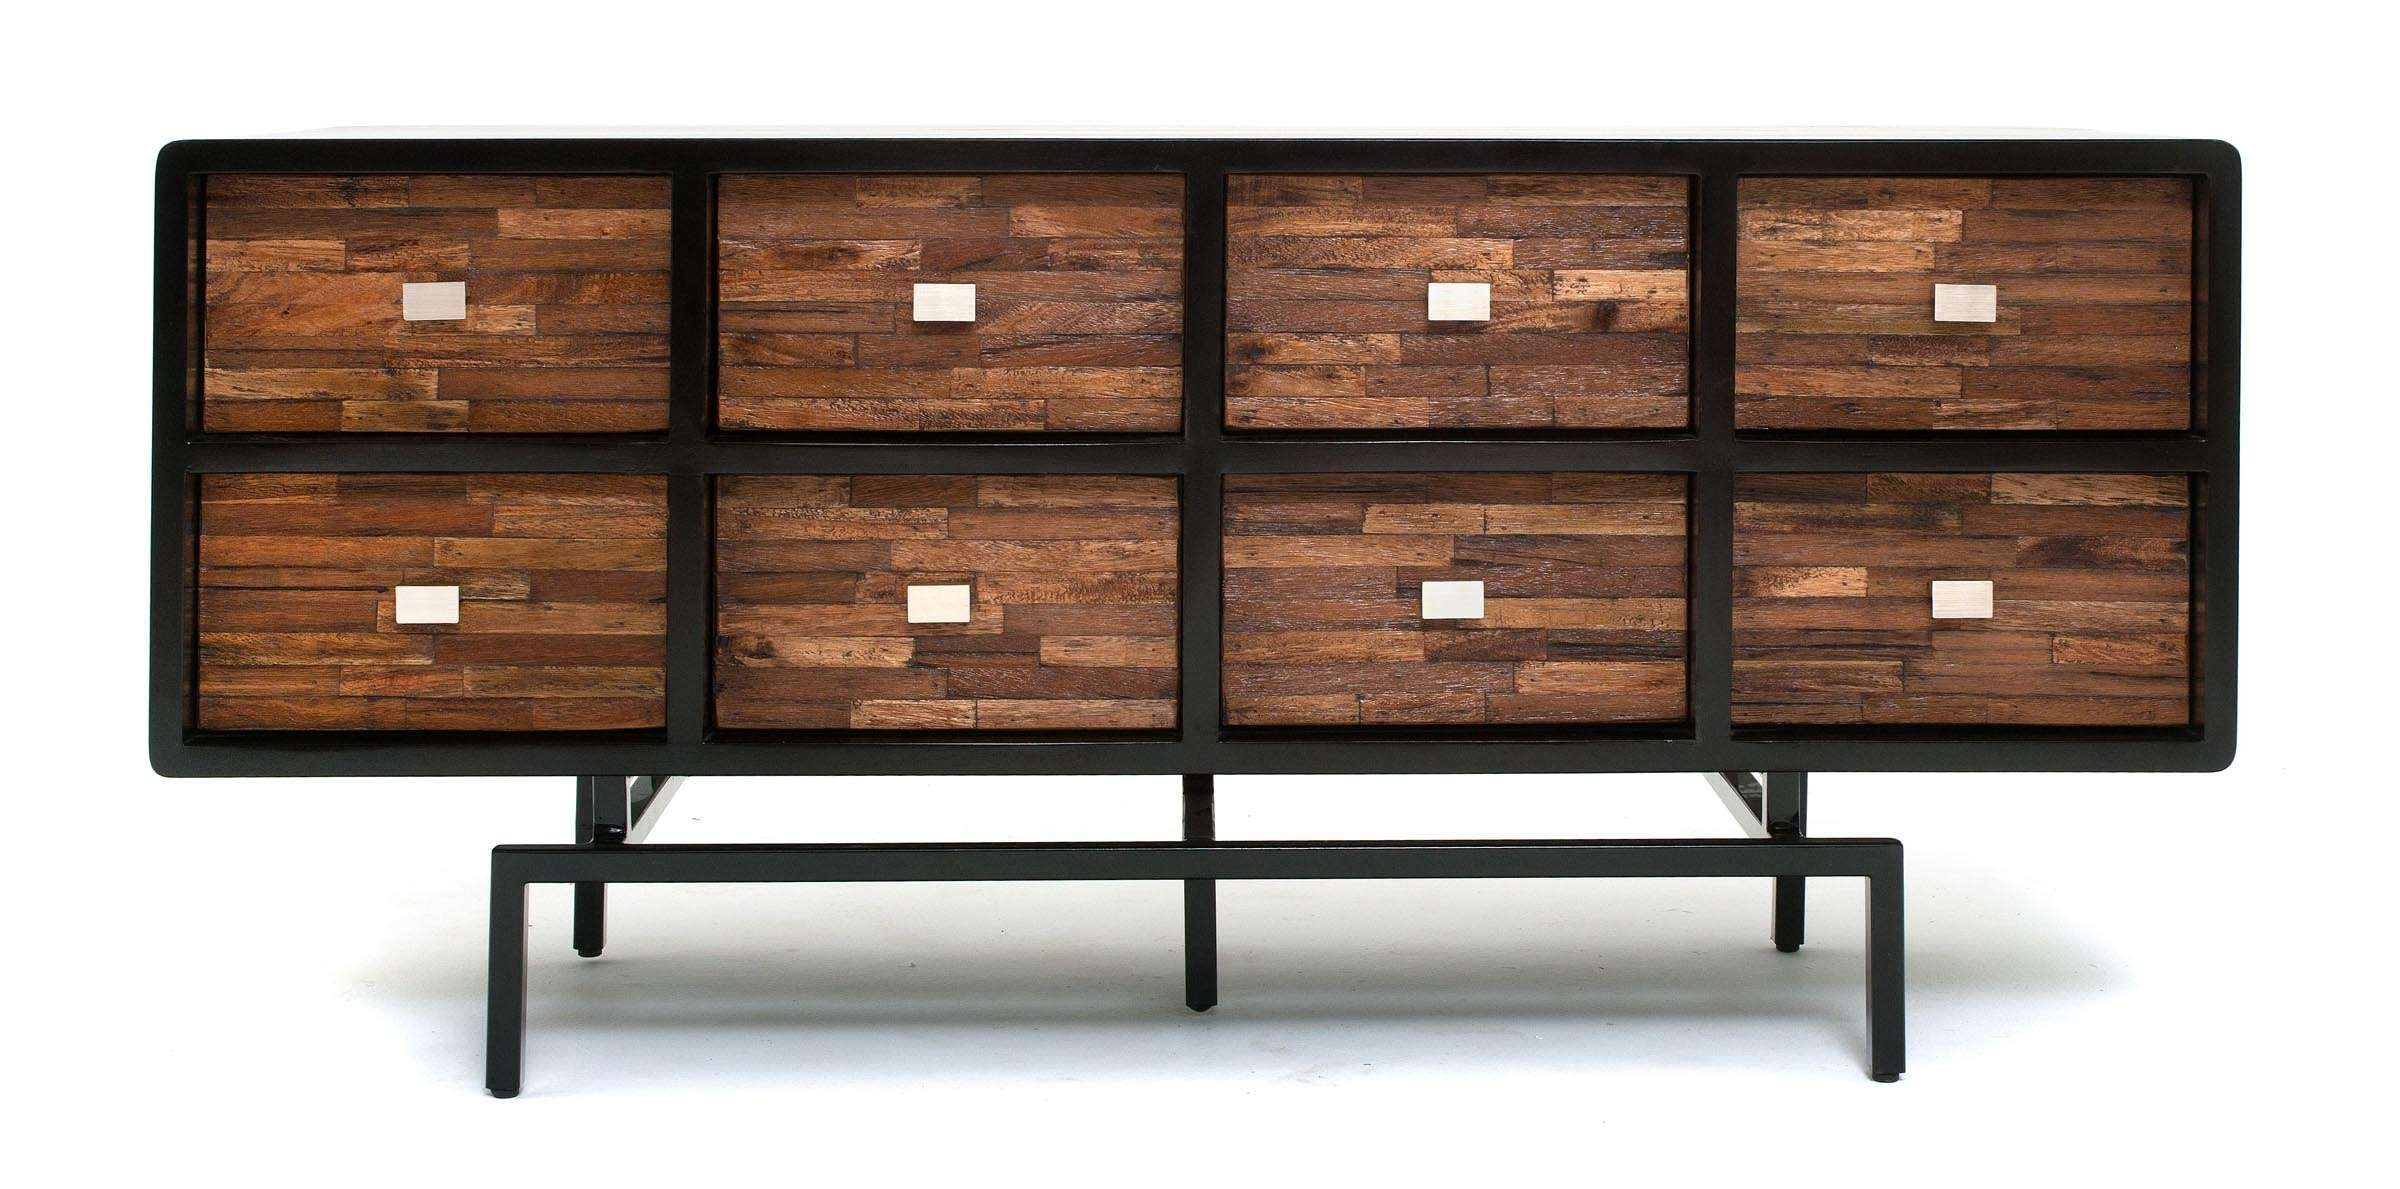 Soft Modern Furniture, Sustainable Sideboard, Reclaimed Wood For Reclaimed Sideboards (View 14 of 20)